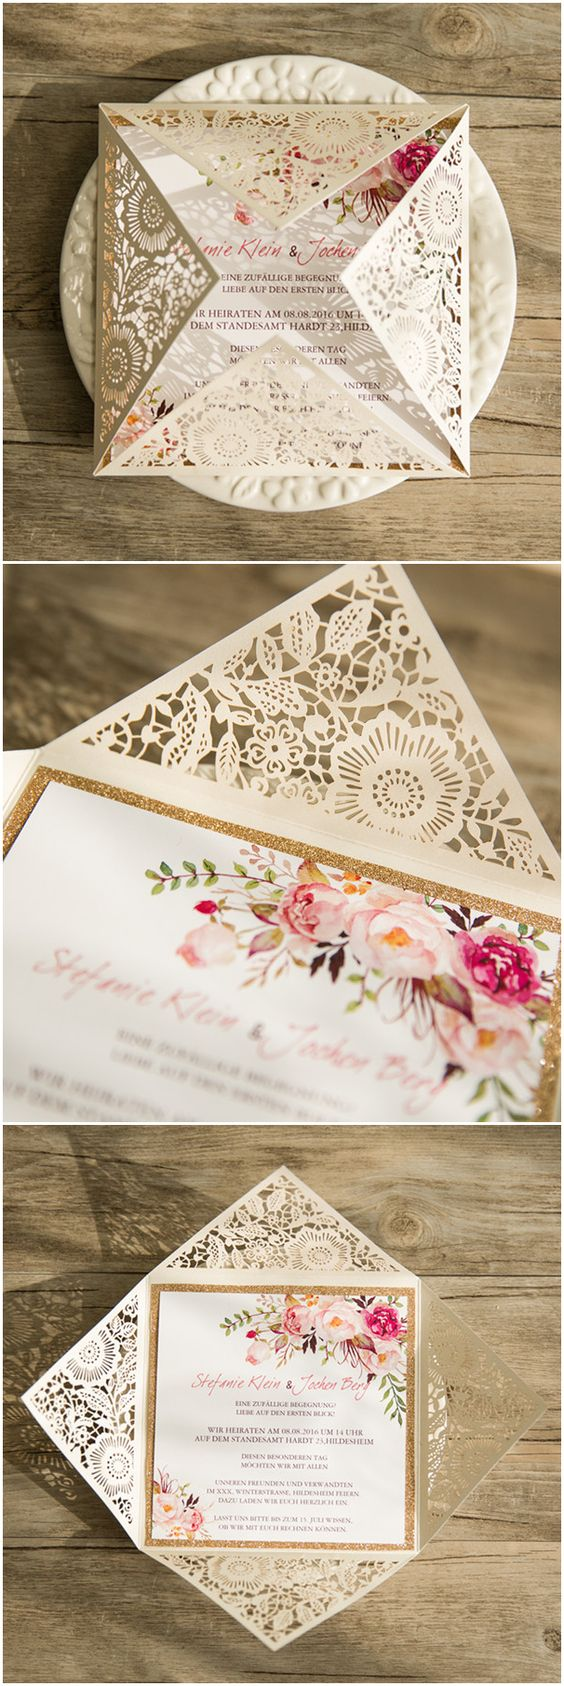 chic floral laser cut wedding invitations with a touch of glitter @elegantwinvites: